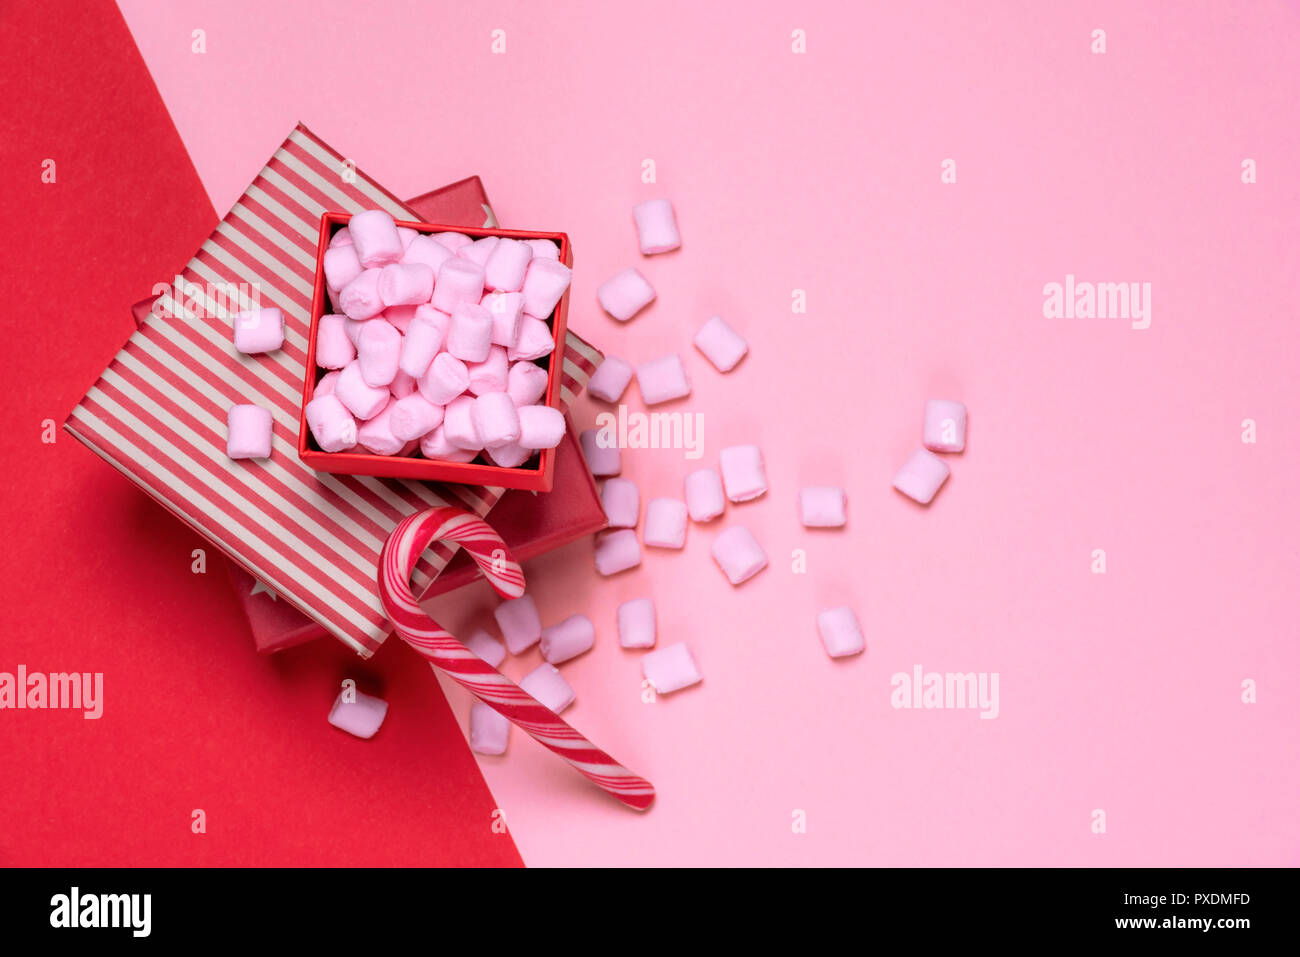 Minimalist Christmas gifts and sweets image with red presents and an ...